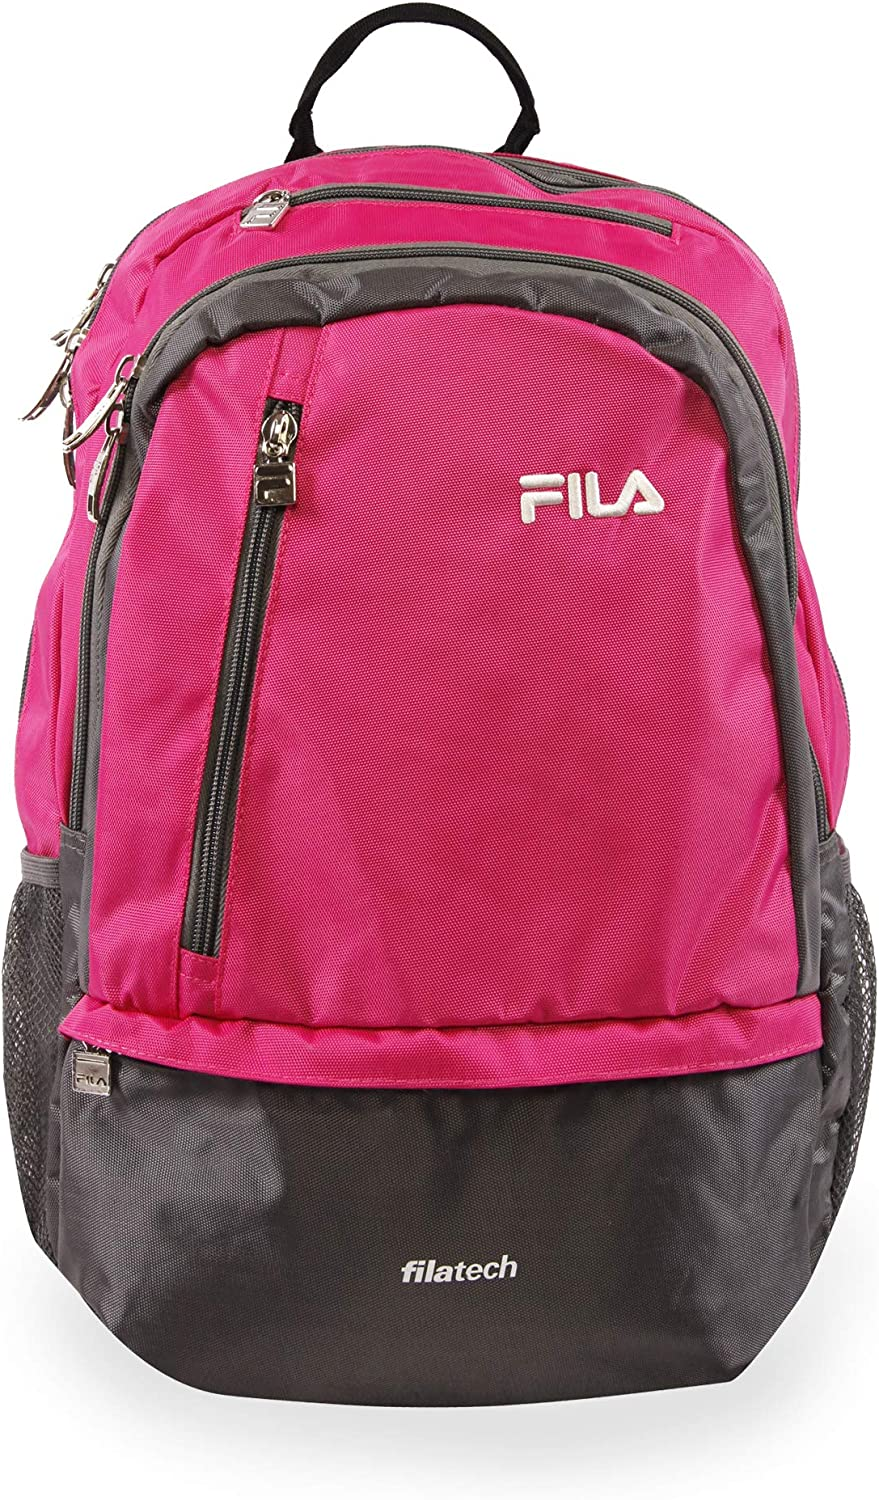 Fila Duel Tablet and Laptop Backpack, Pink, One Size